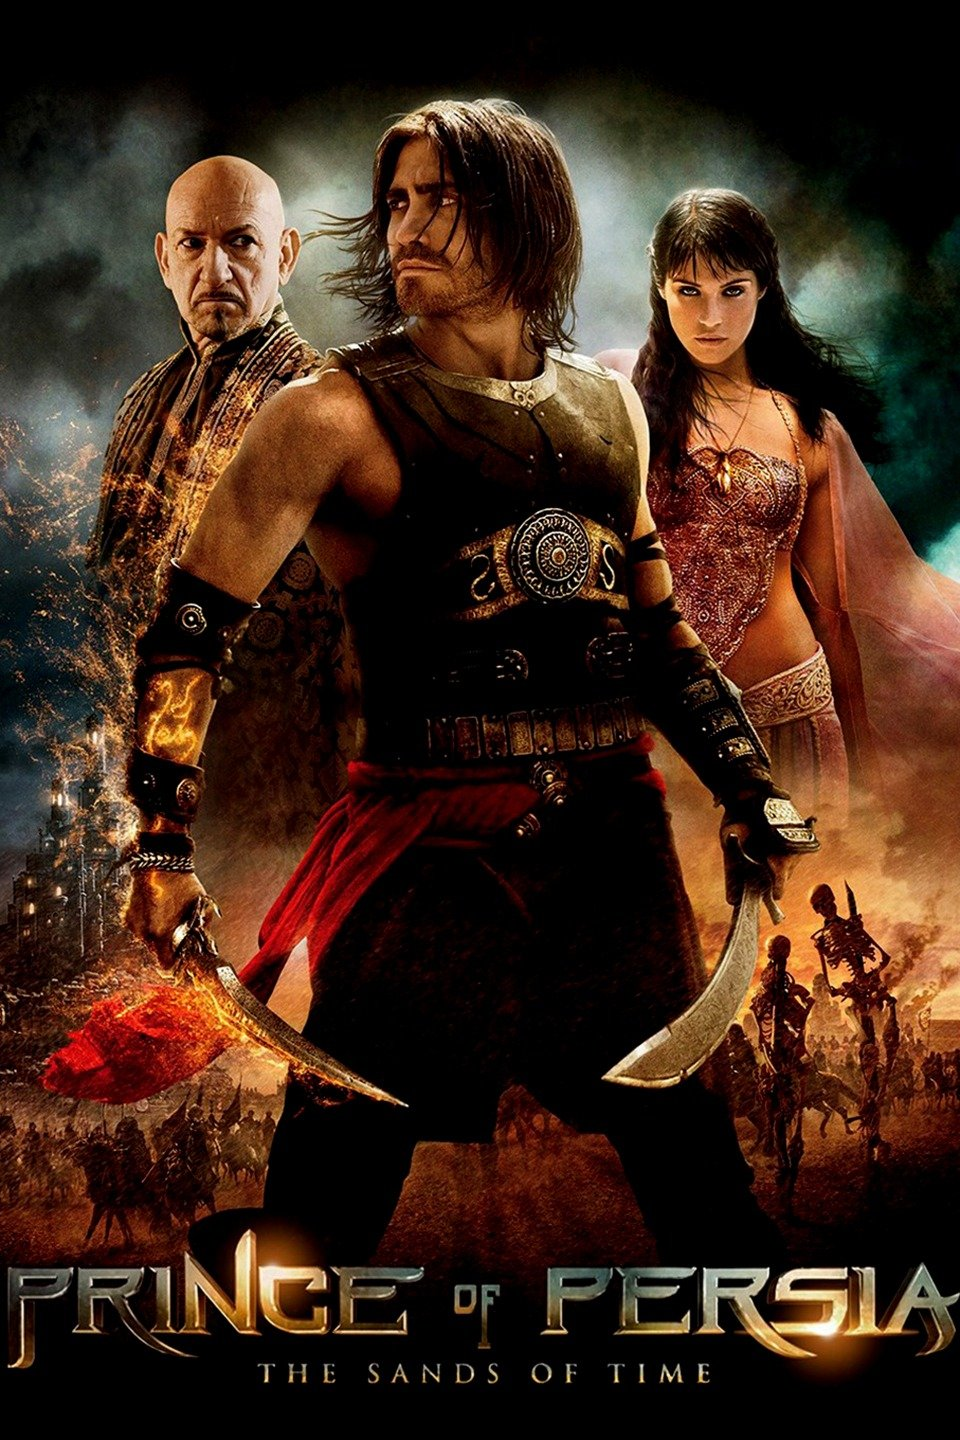 prince of persia full movie in hindi free download mp4